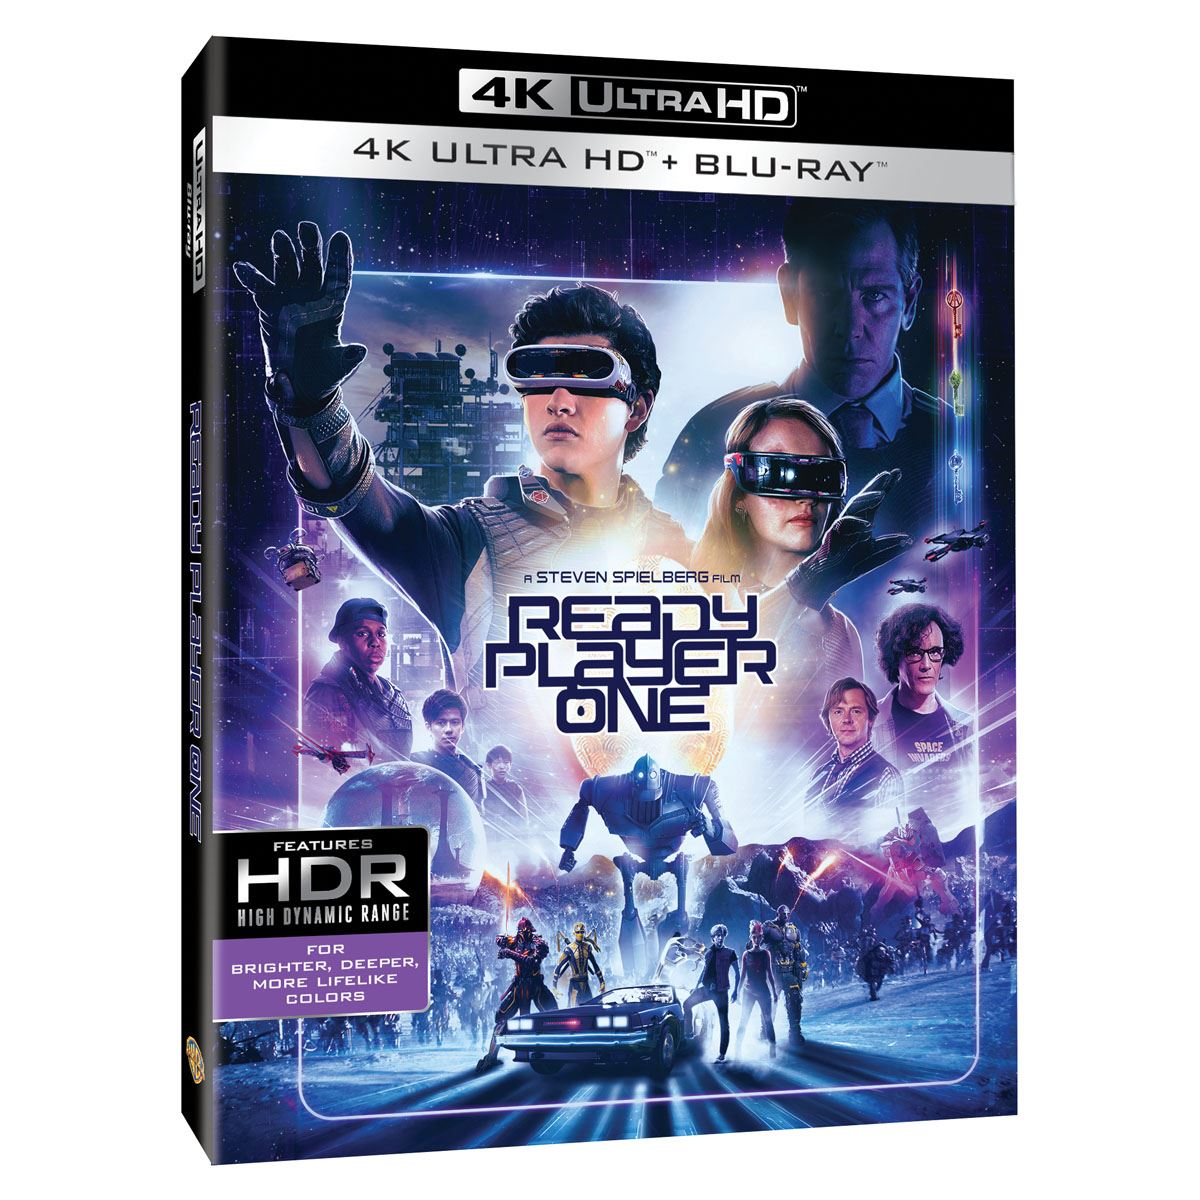 BR 4K Ready Player One